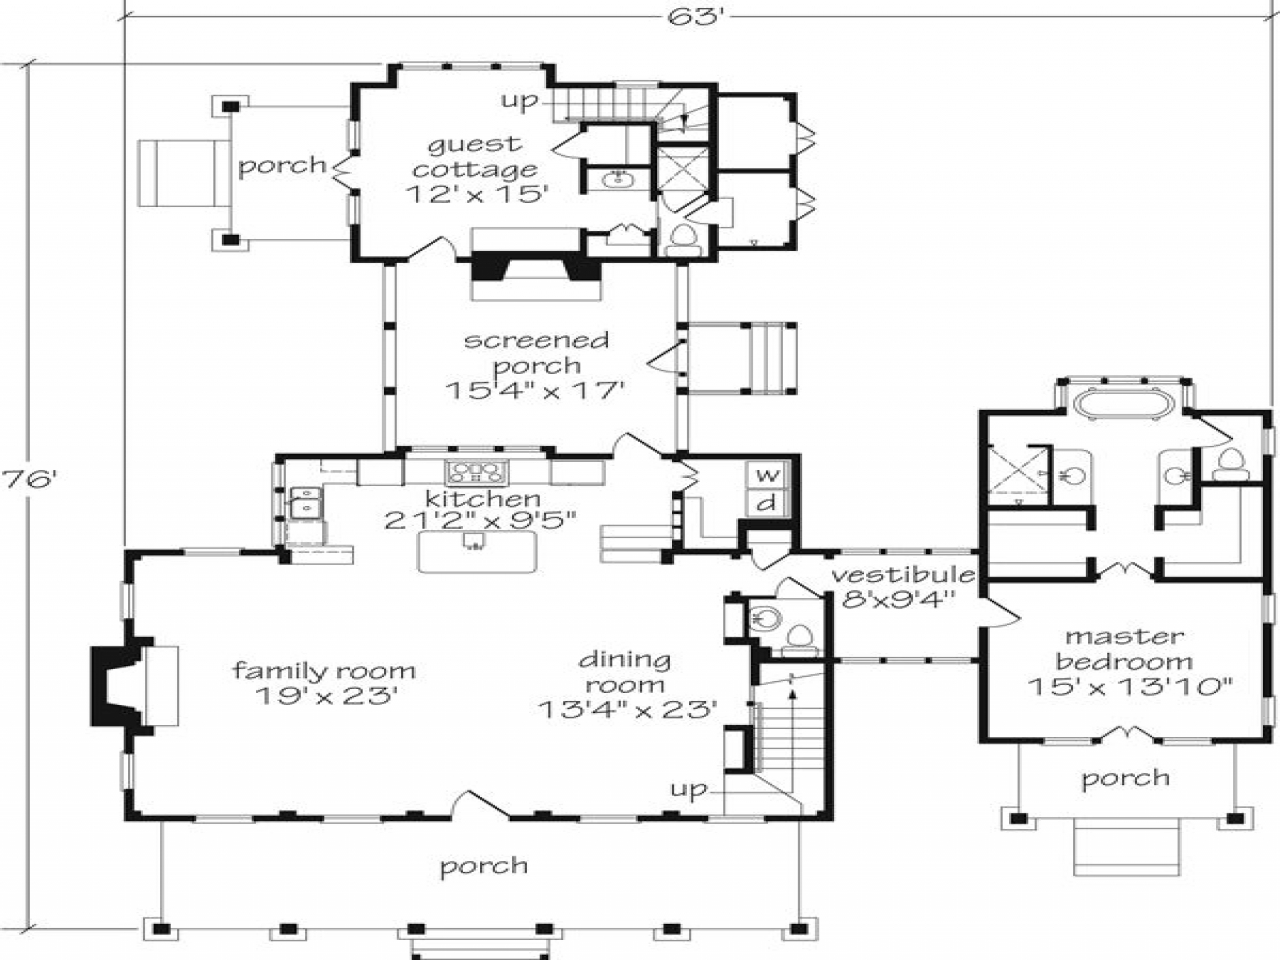 Southern living floor plans with guest houses southern for Southern cottage floor plans